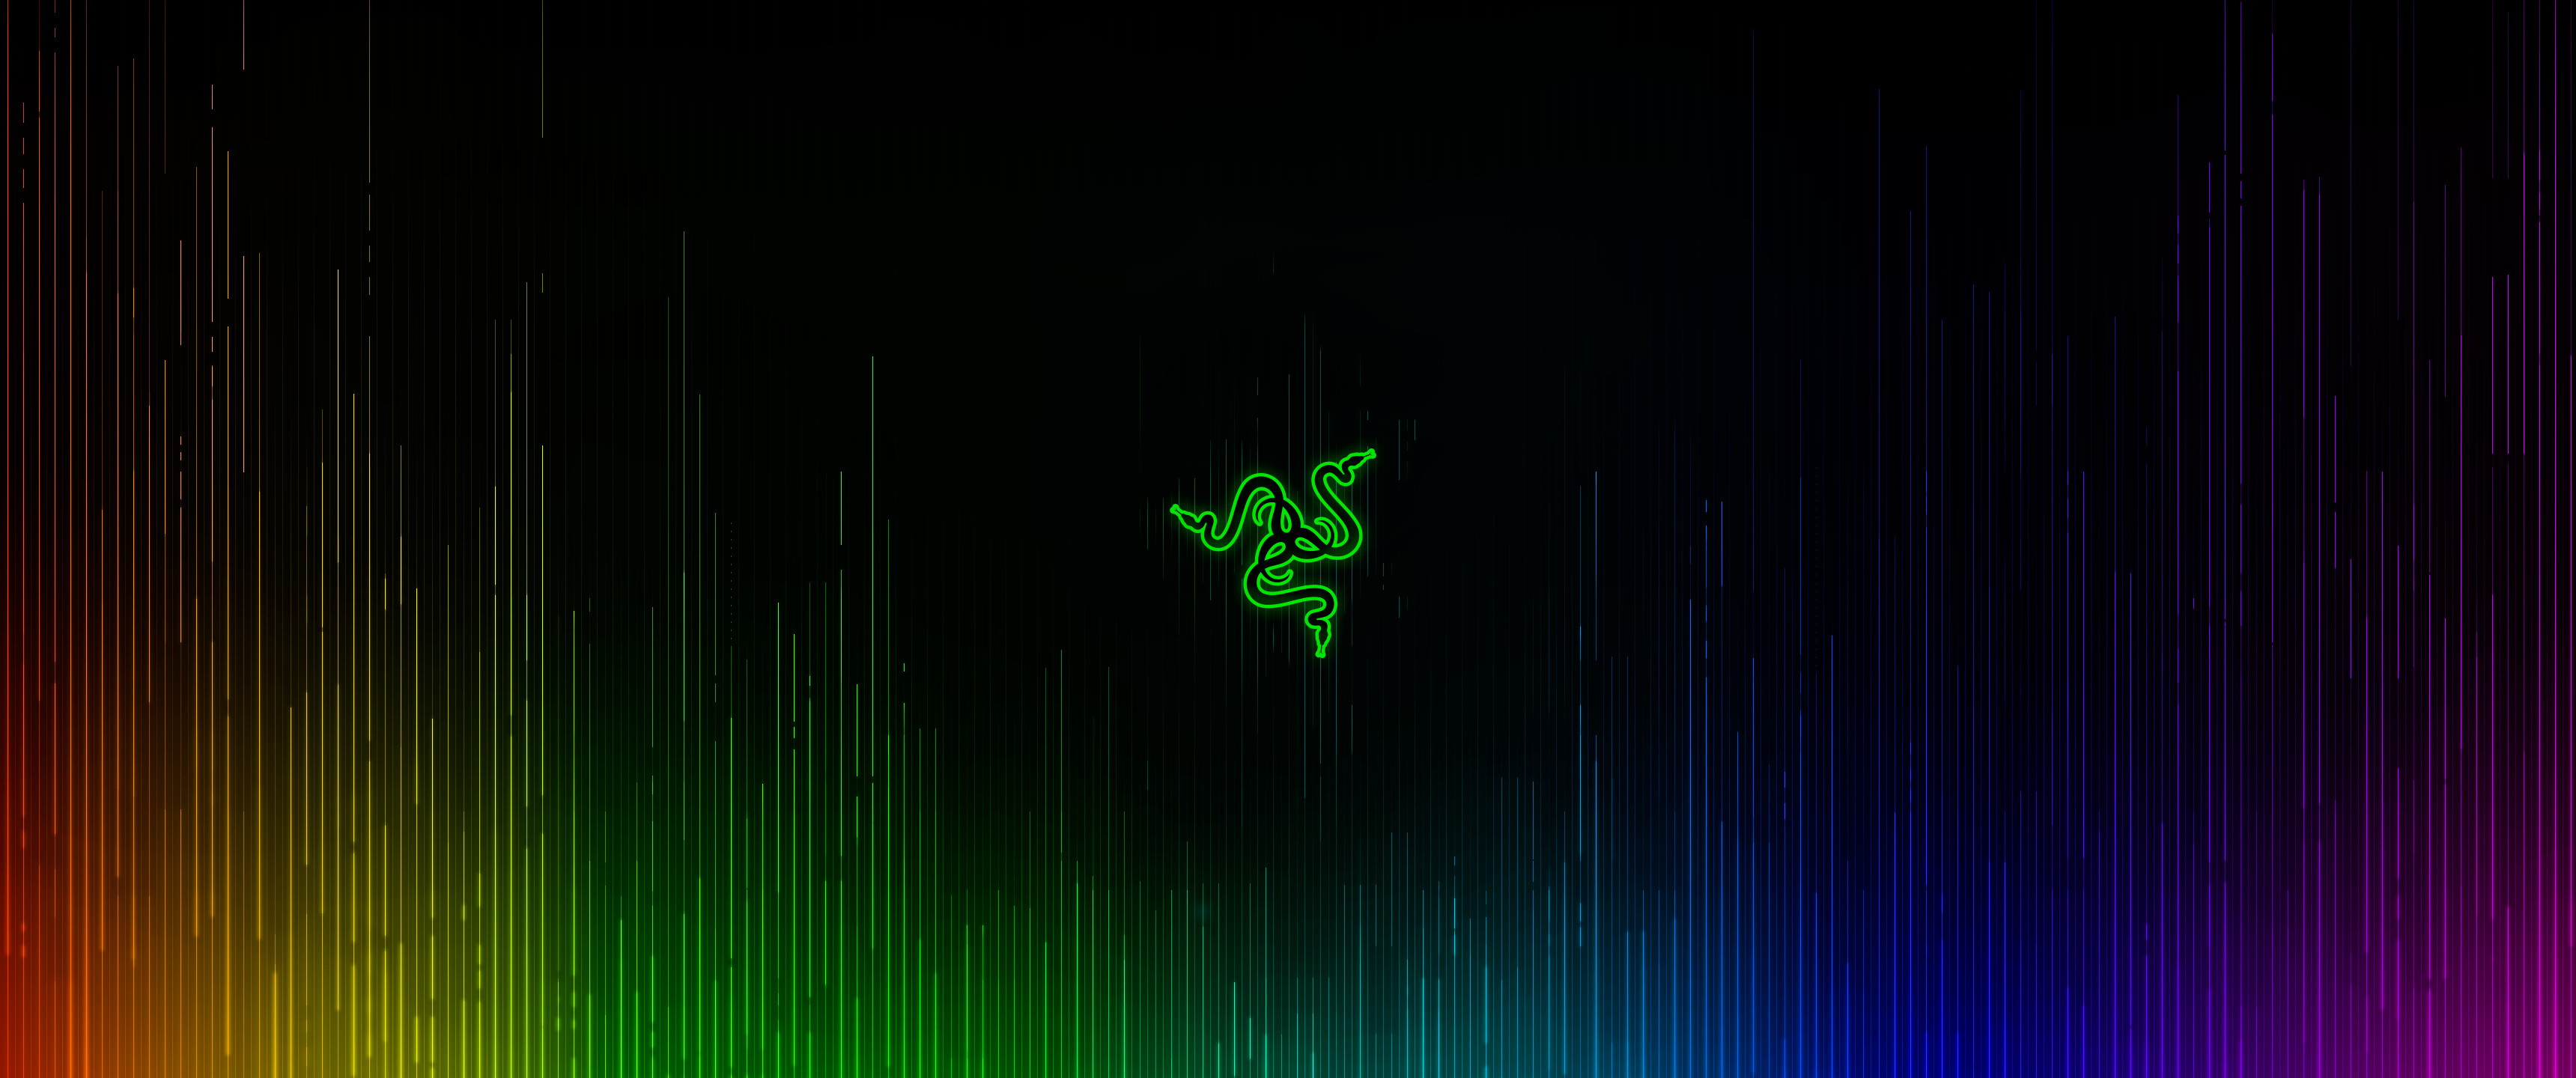 Green Razer een razer hd wallpaper background